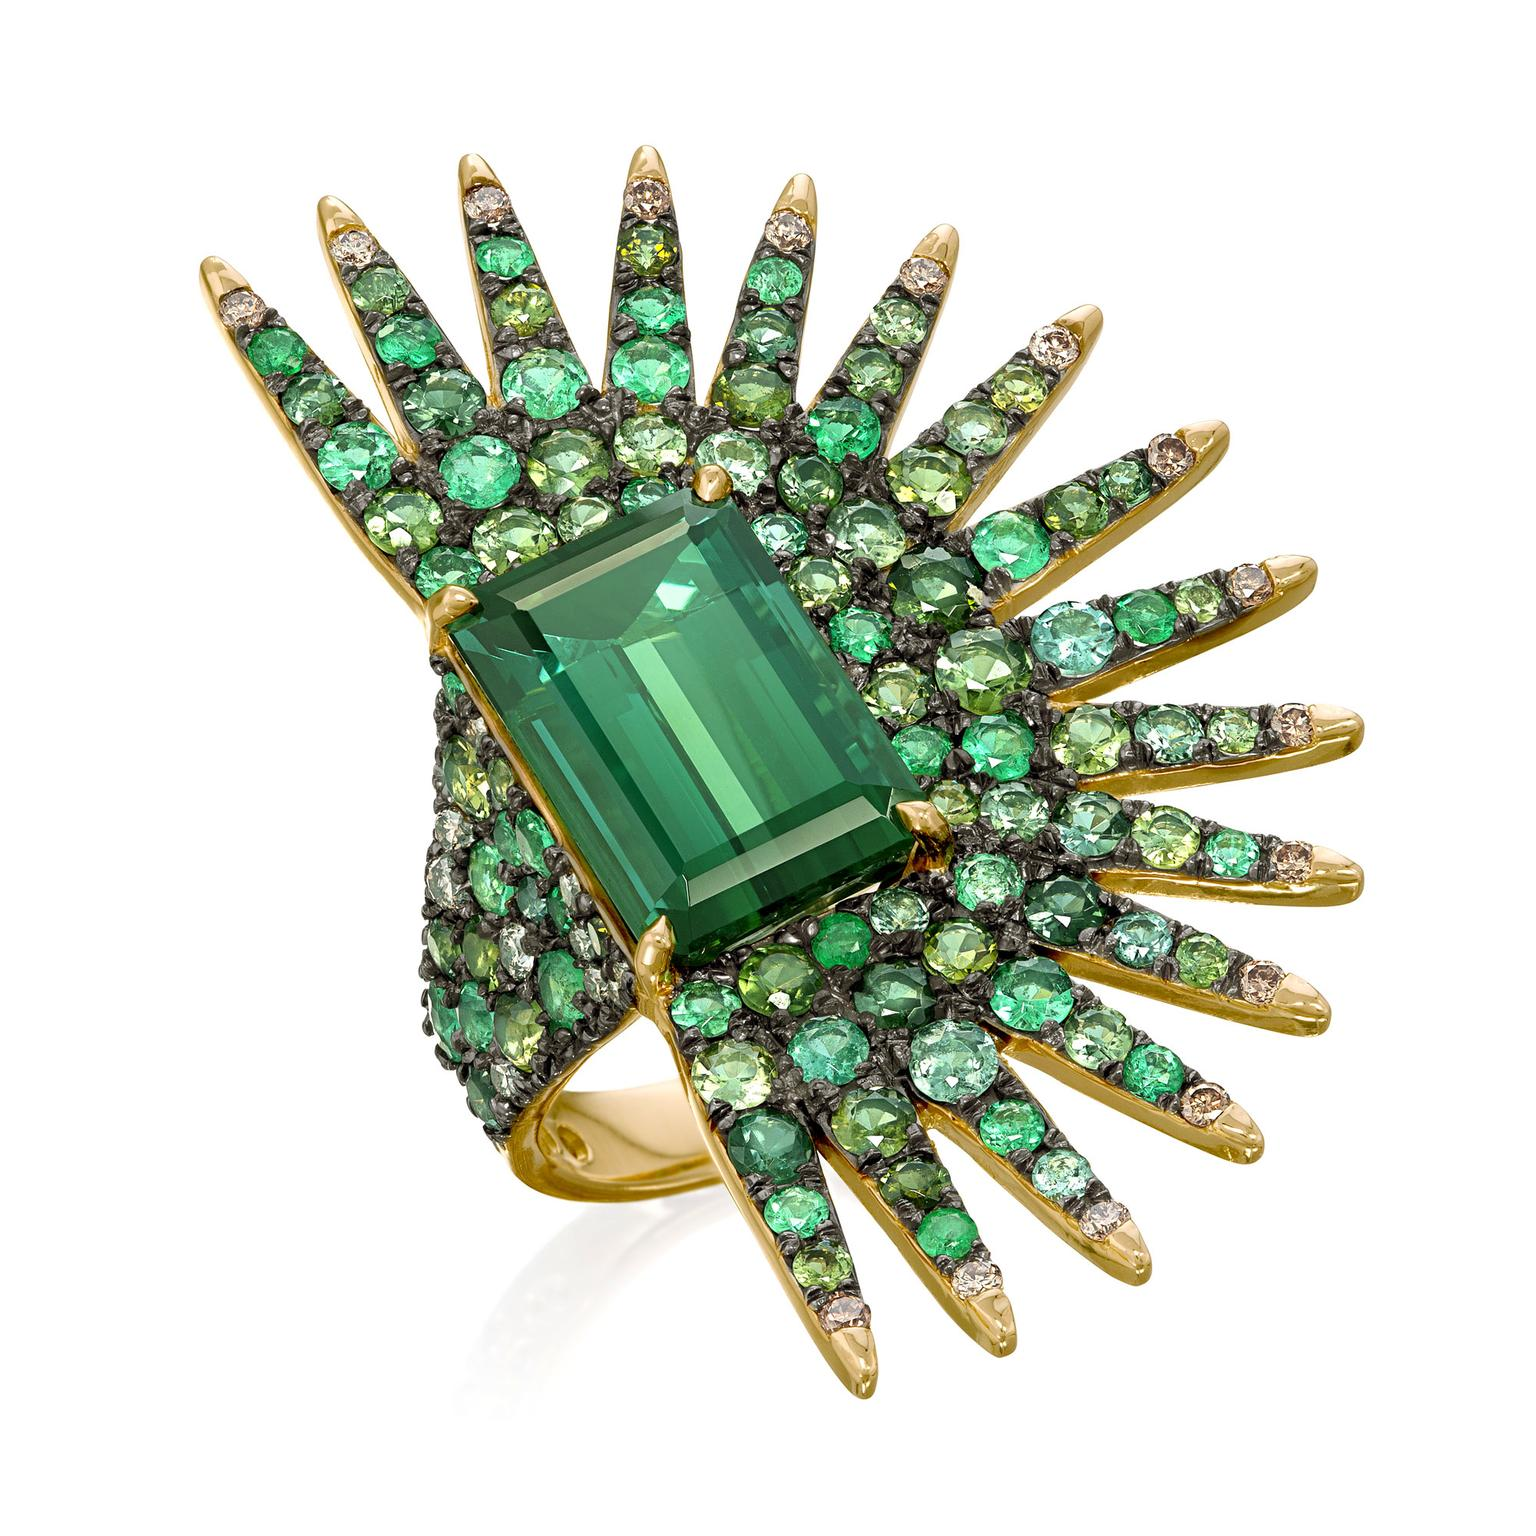 Amsterdam Sauer emerald, tourmaline and diamond ring